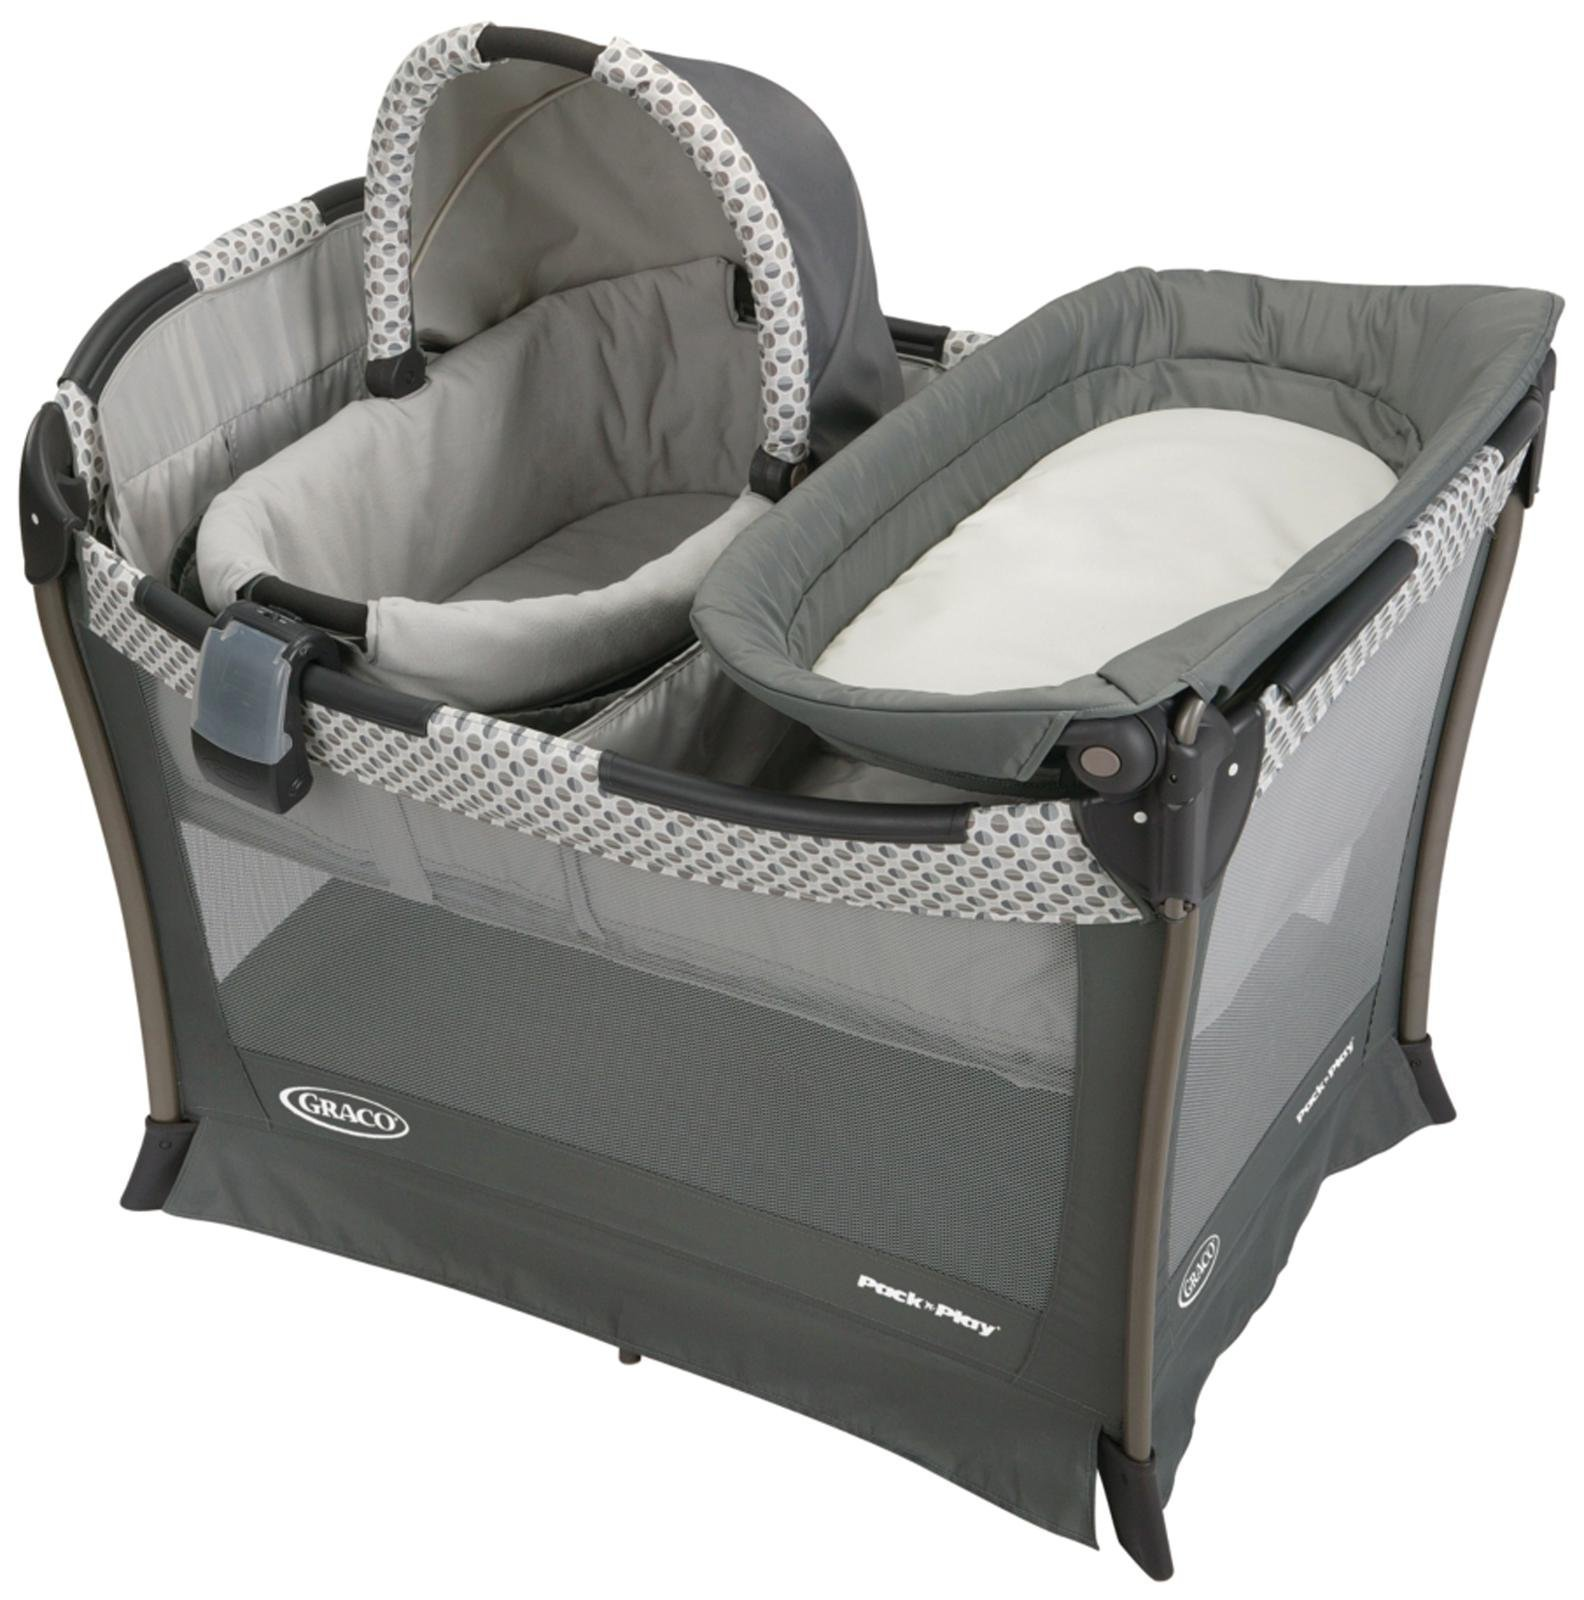 Crib for babies philippines - Graco Pack N Play Playard Fifer Passion Cradle Multicolor